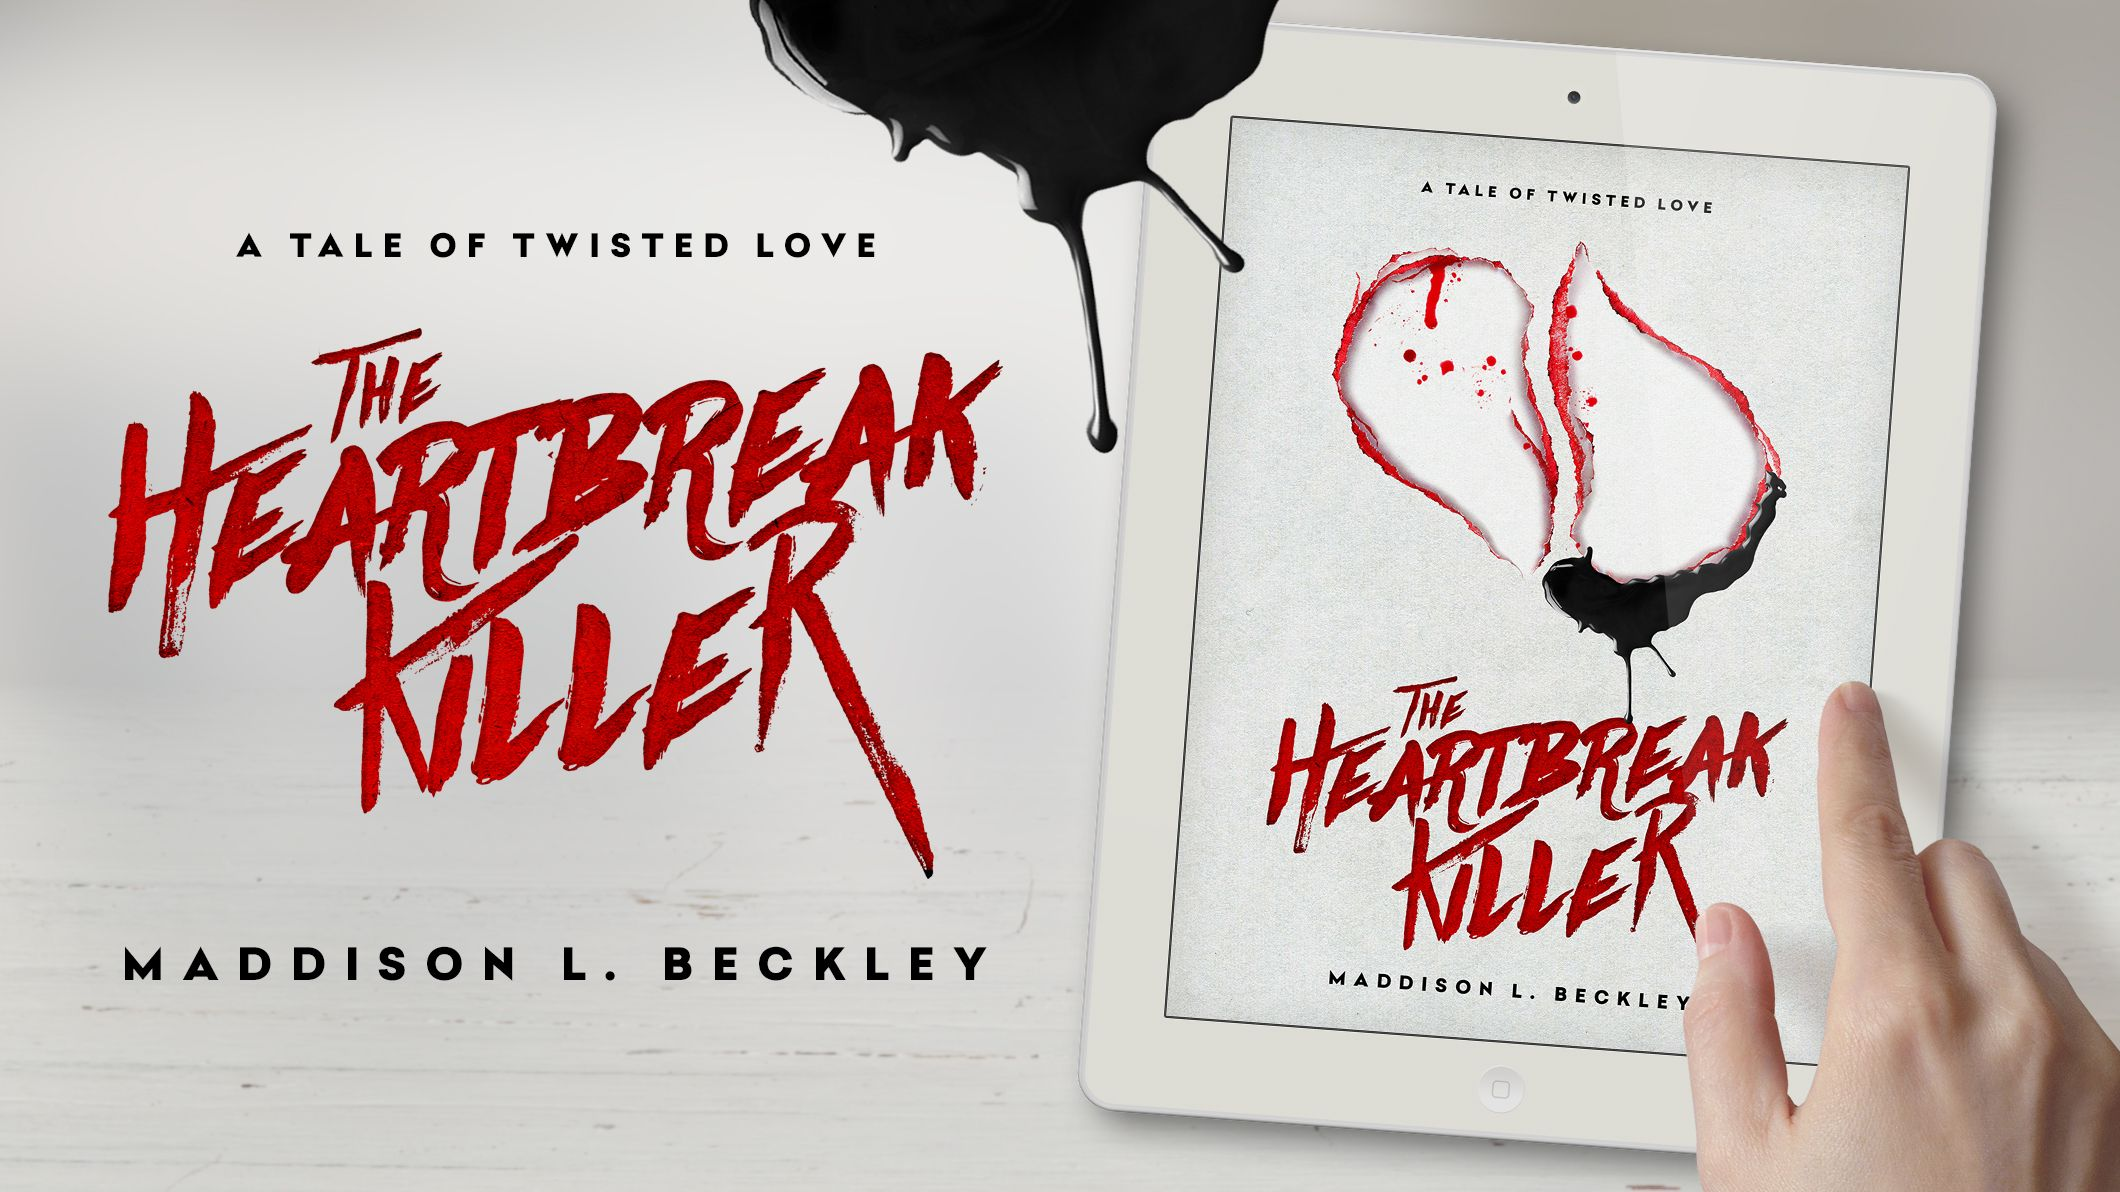 """Promotion for the new eBook """"A Tale of Twisted Love: The Heartbreak Killer"""", out now on Amazon.com"""